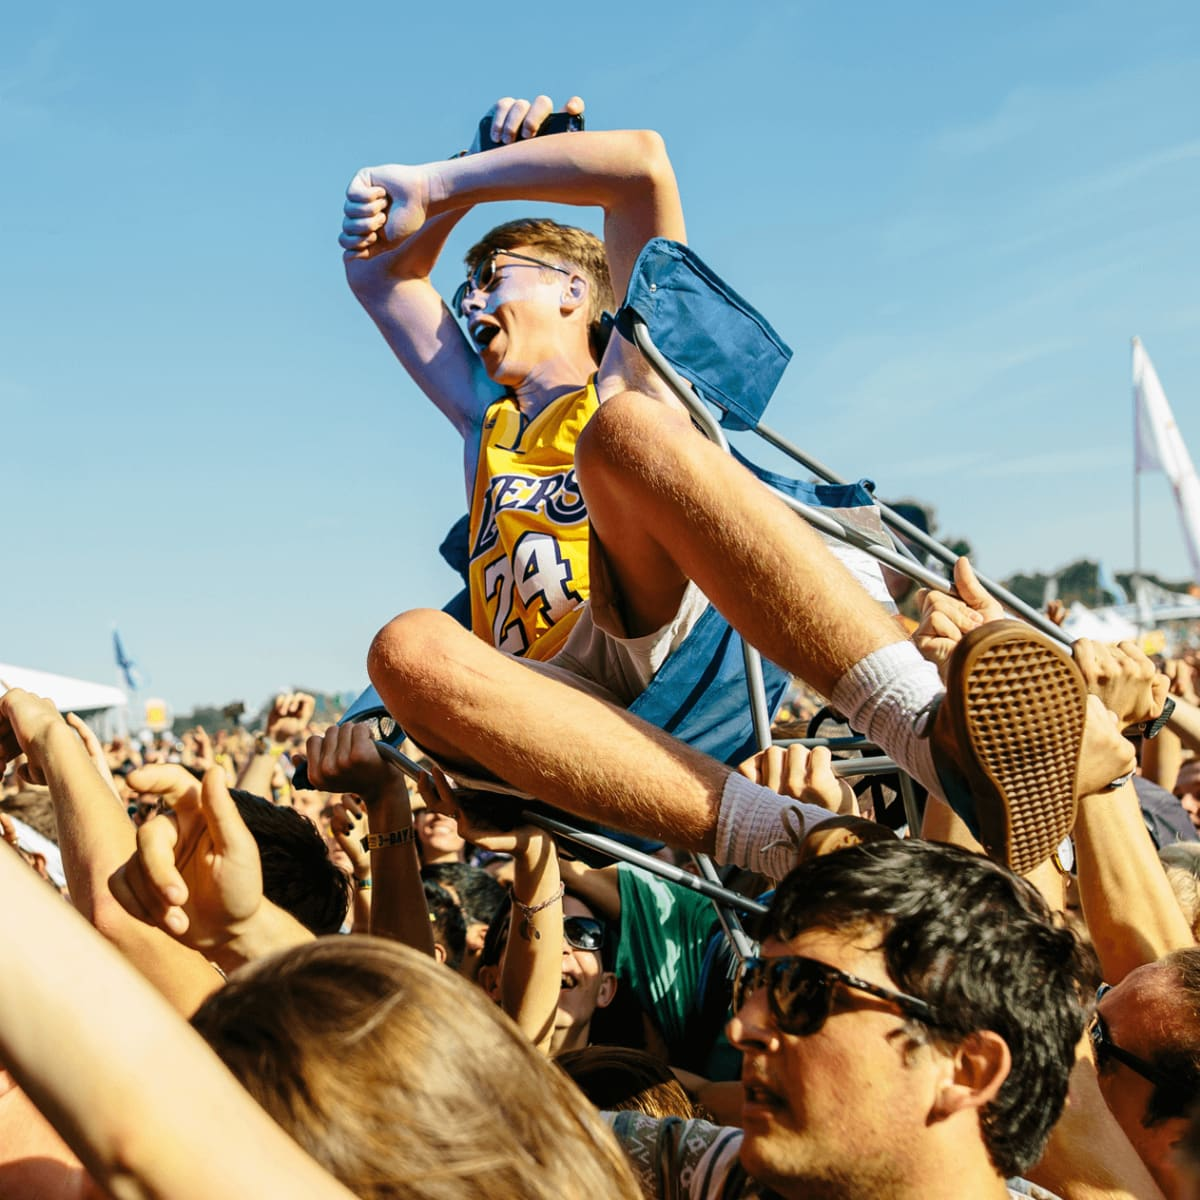 Austin City Limits Festival ACL 2015 Weekend One Day One Crowd Surfer